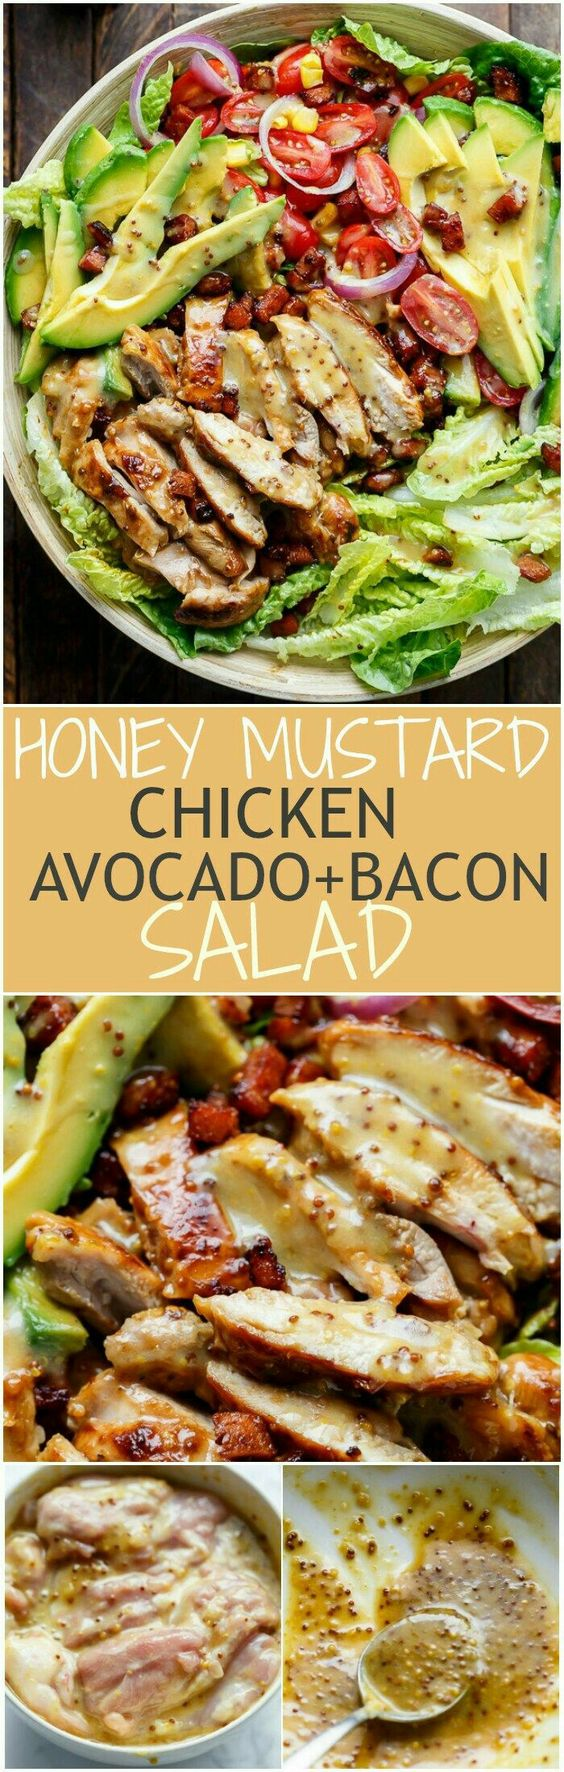 Honey Mustard Chicken Bacon Avocado Salad Honey Mustard Chicken Bacon + Avocado Salad